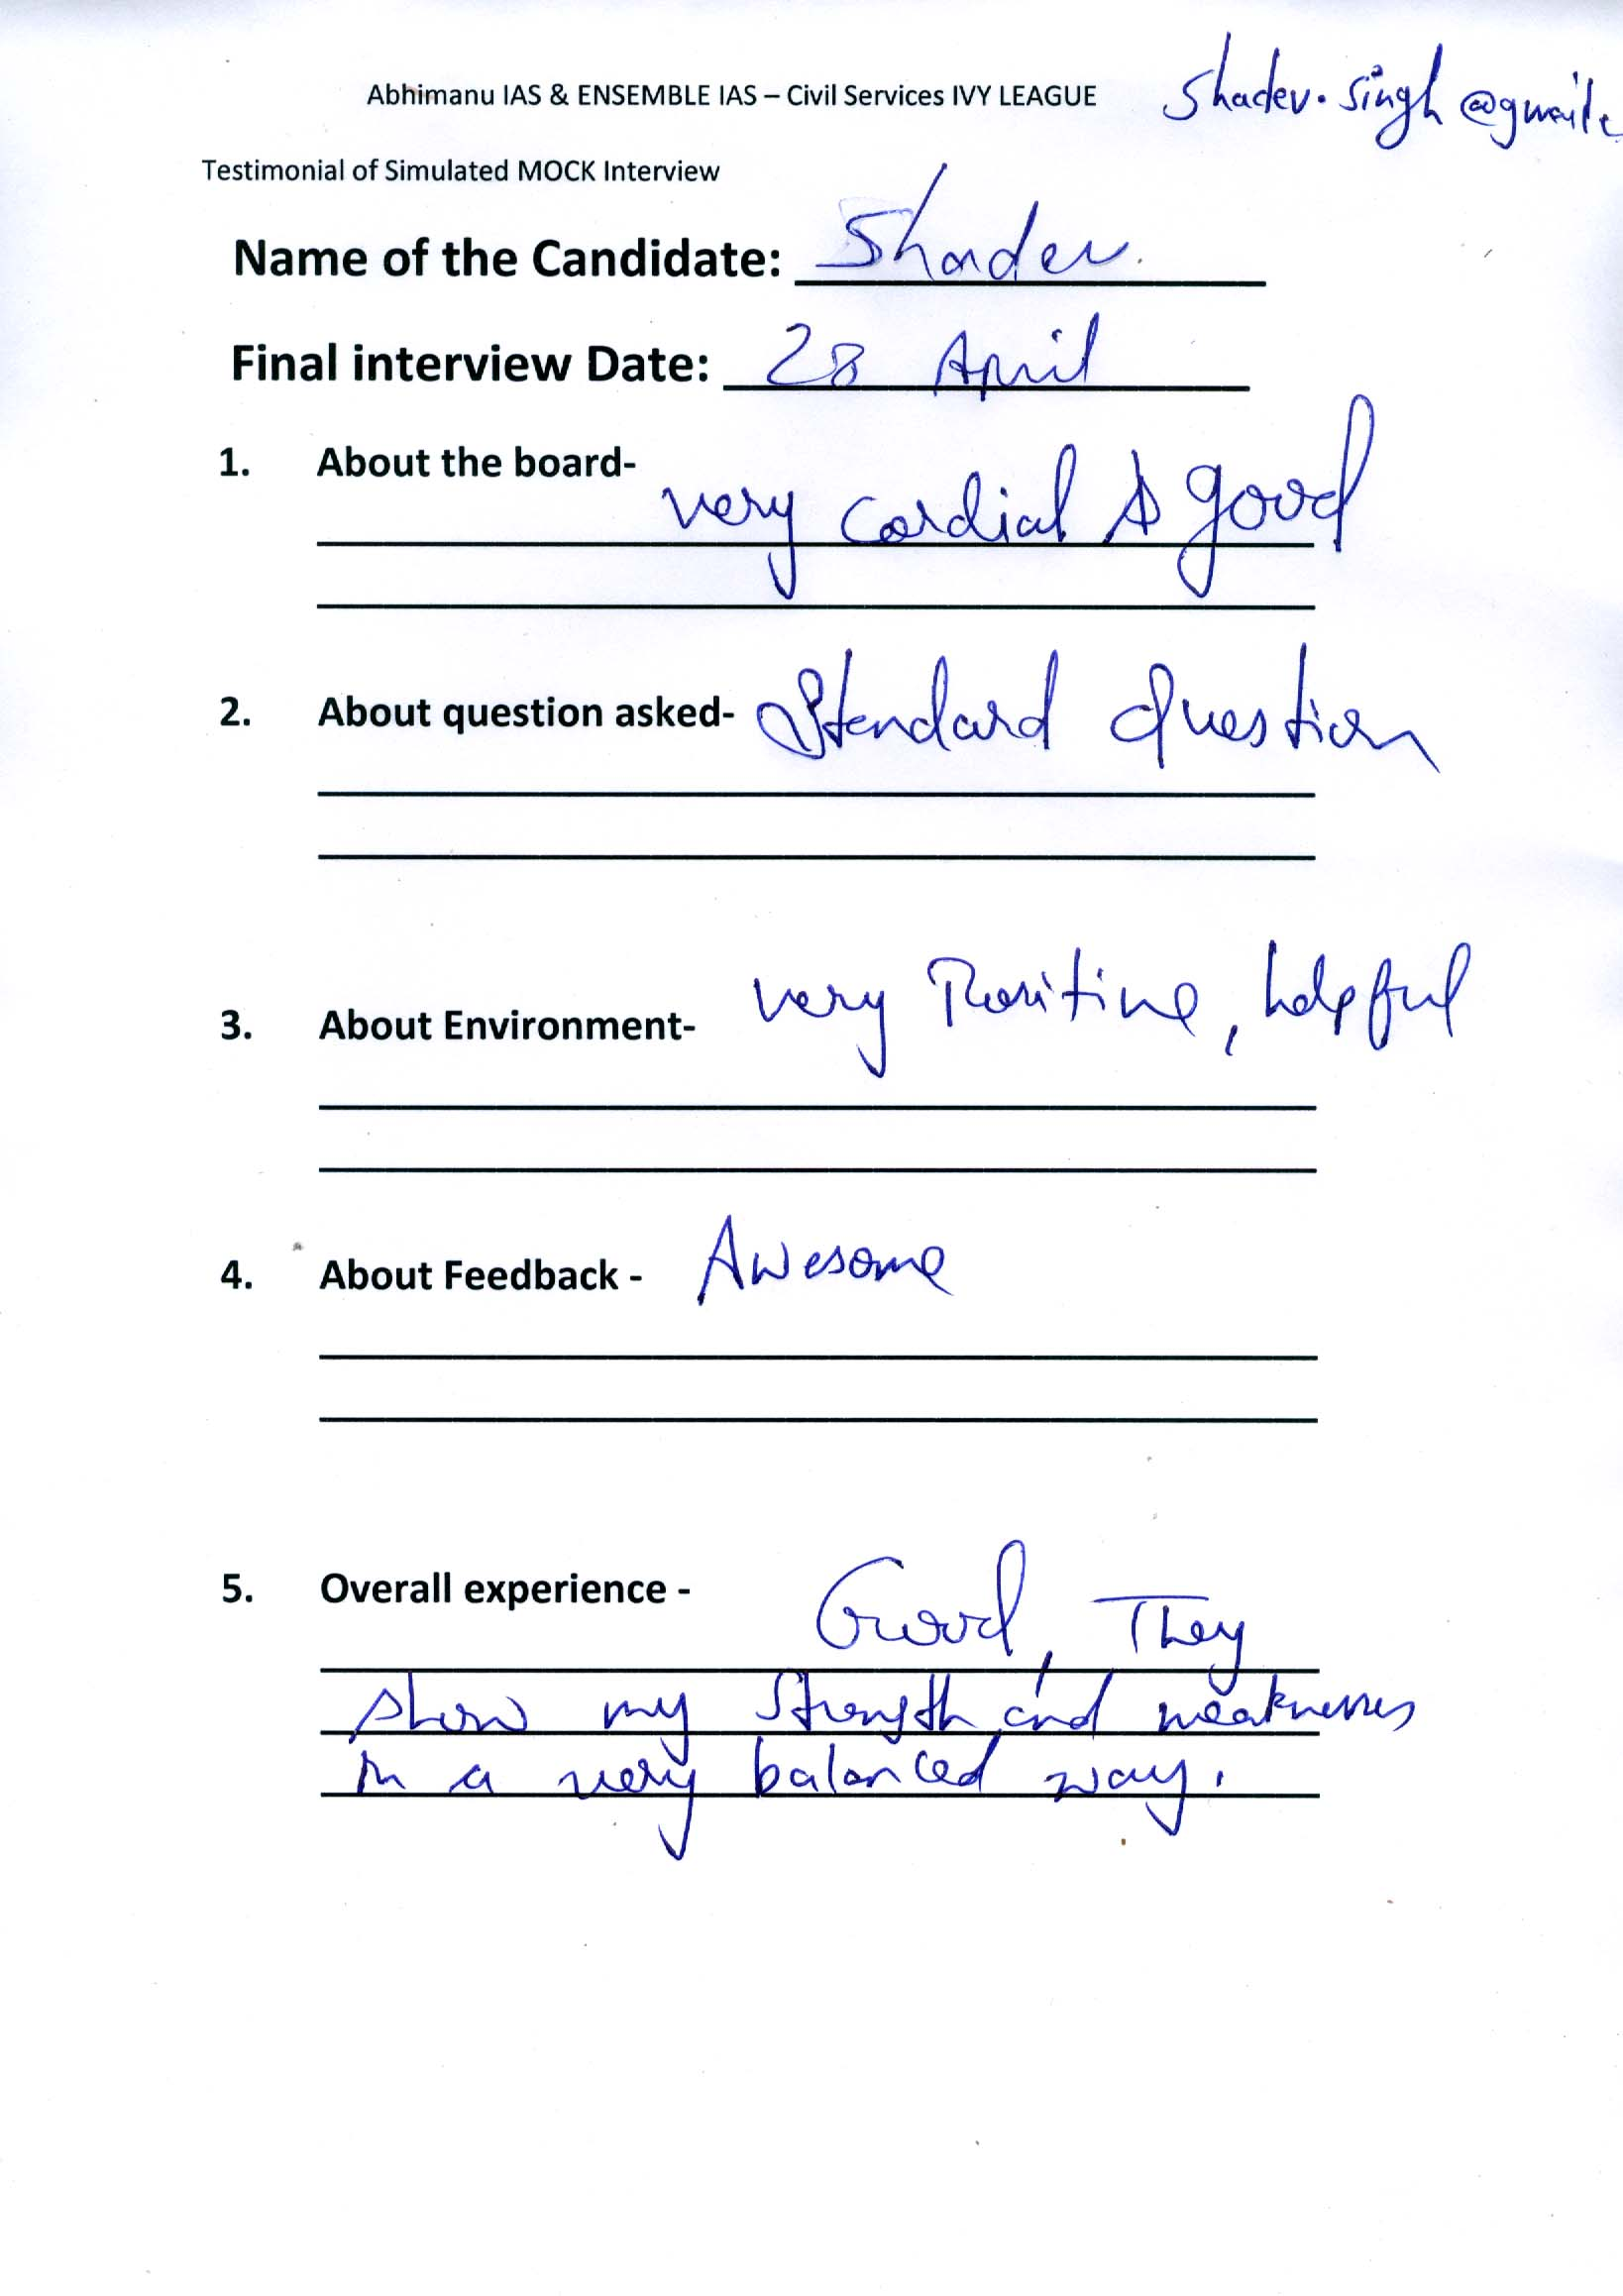 Interview Testimonial By- Shadev